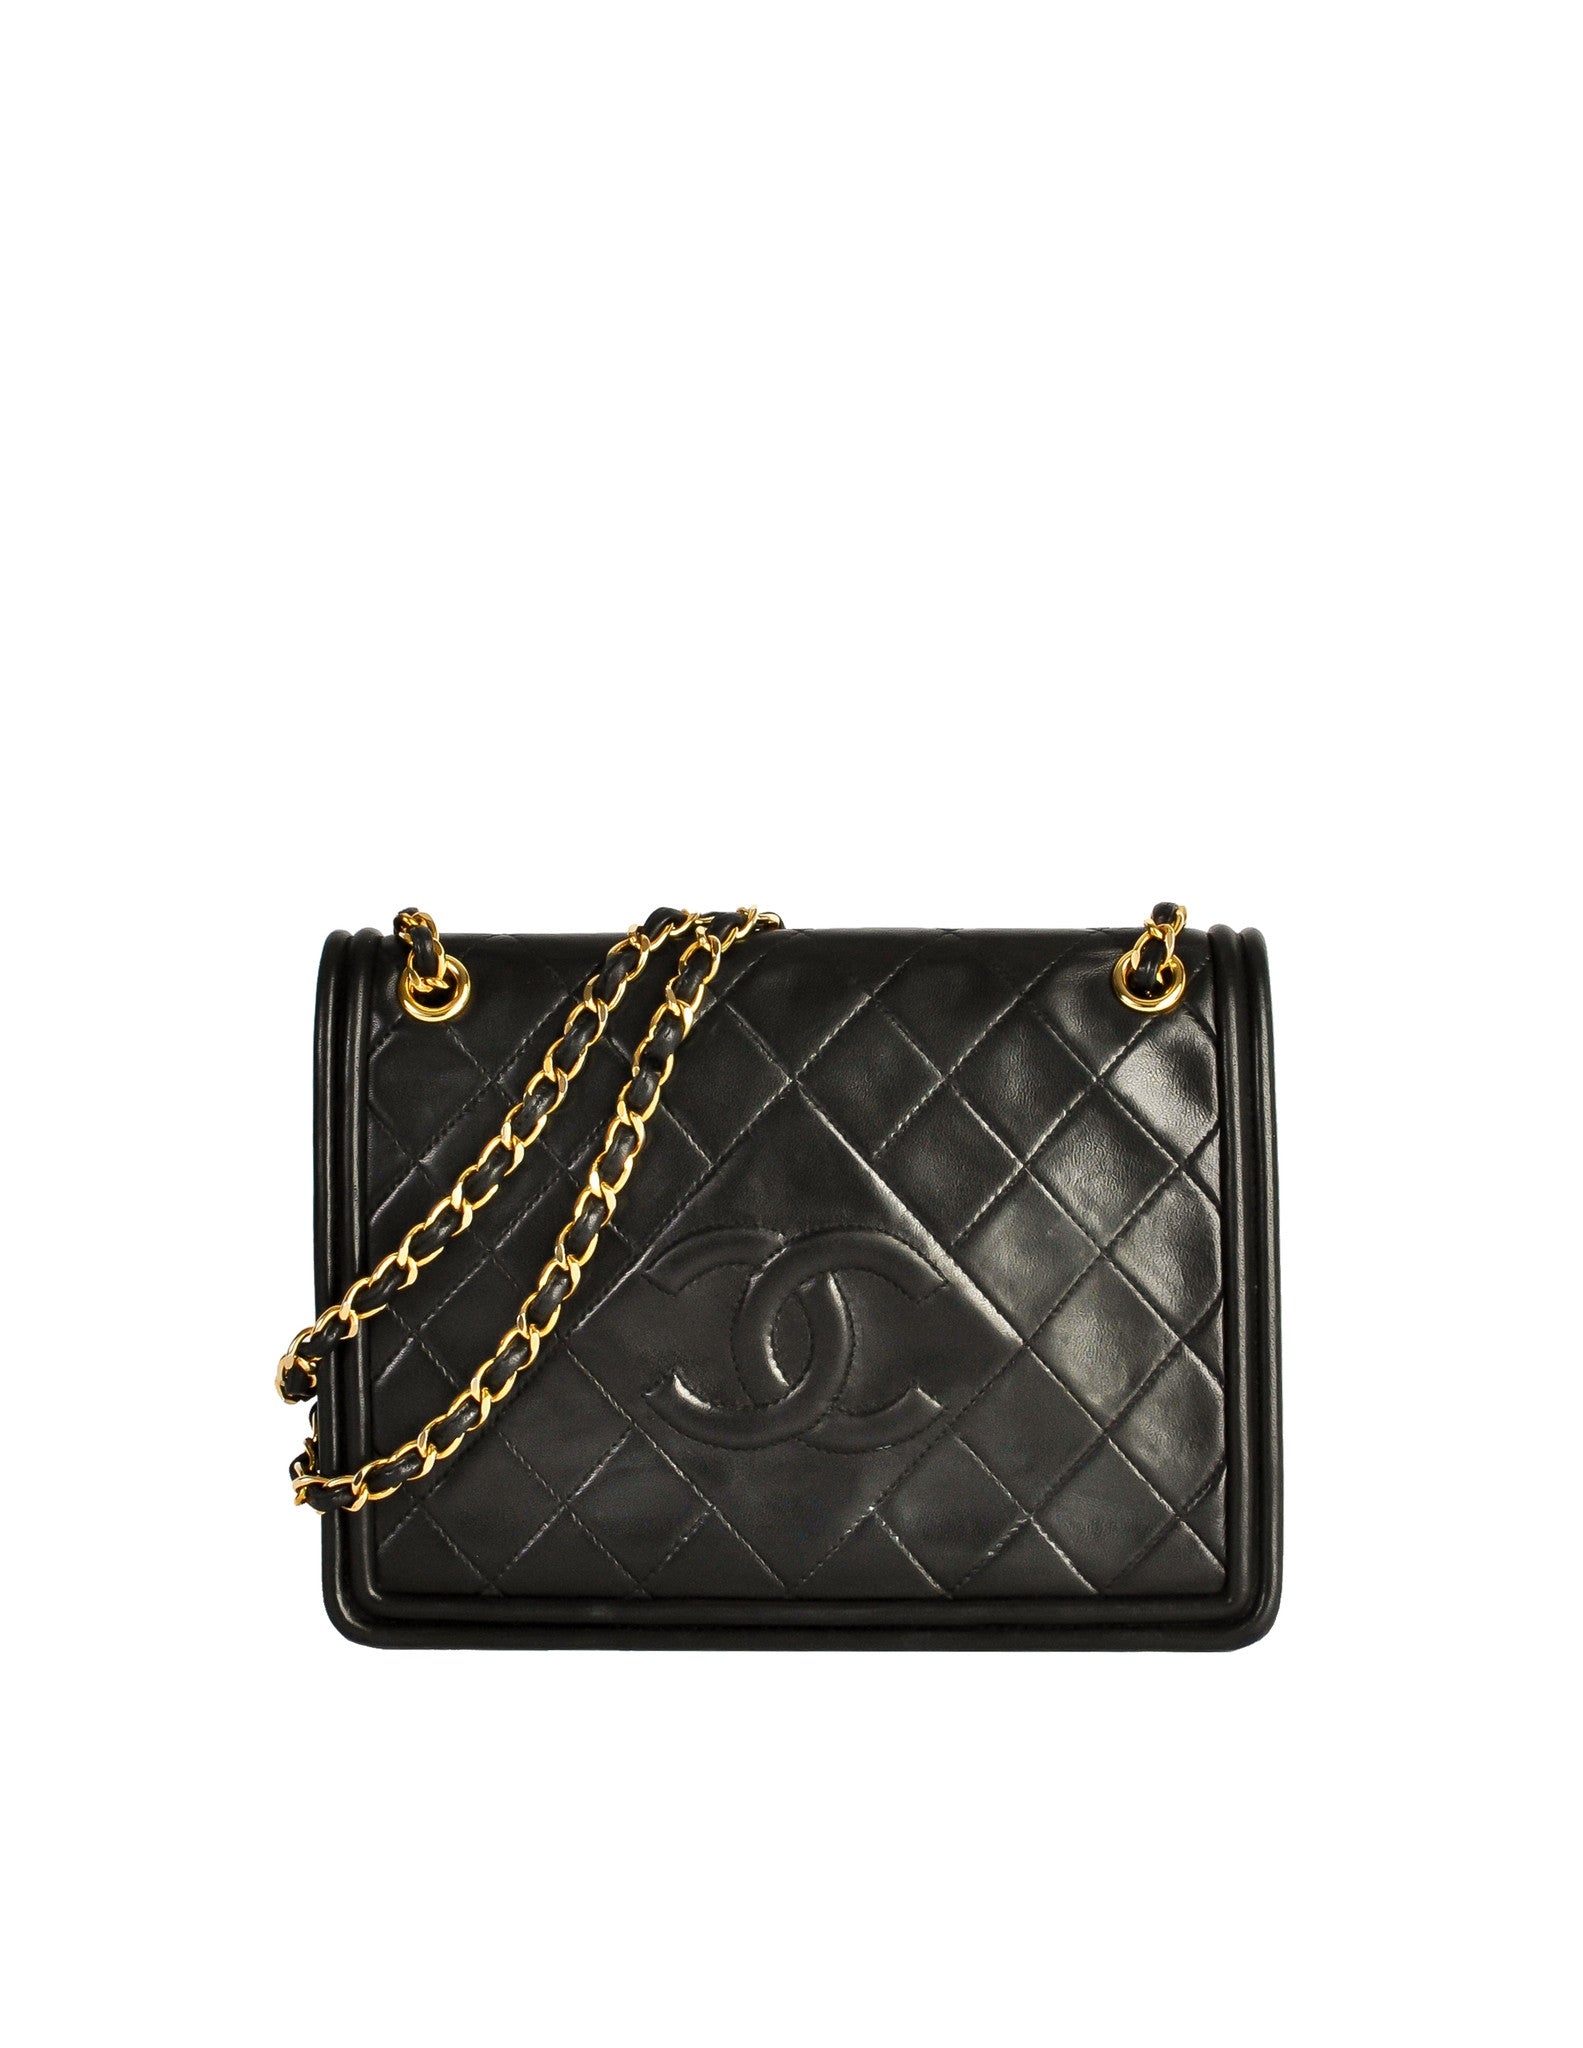 Chanel Vintage Black Lambskin Leather Quilted CC Logo Bag - Amarcord Vintage Fashion  - 1